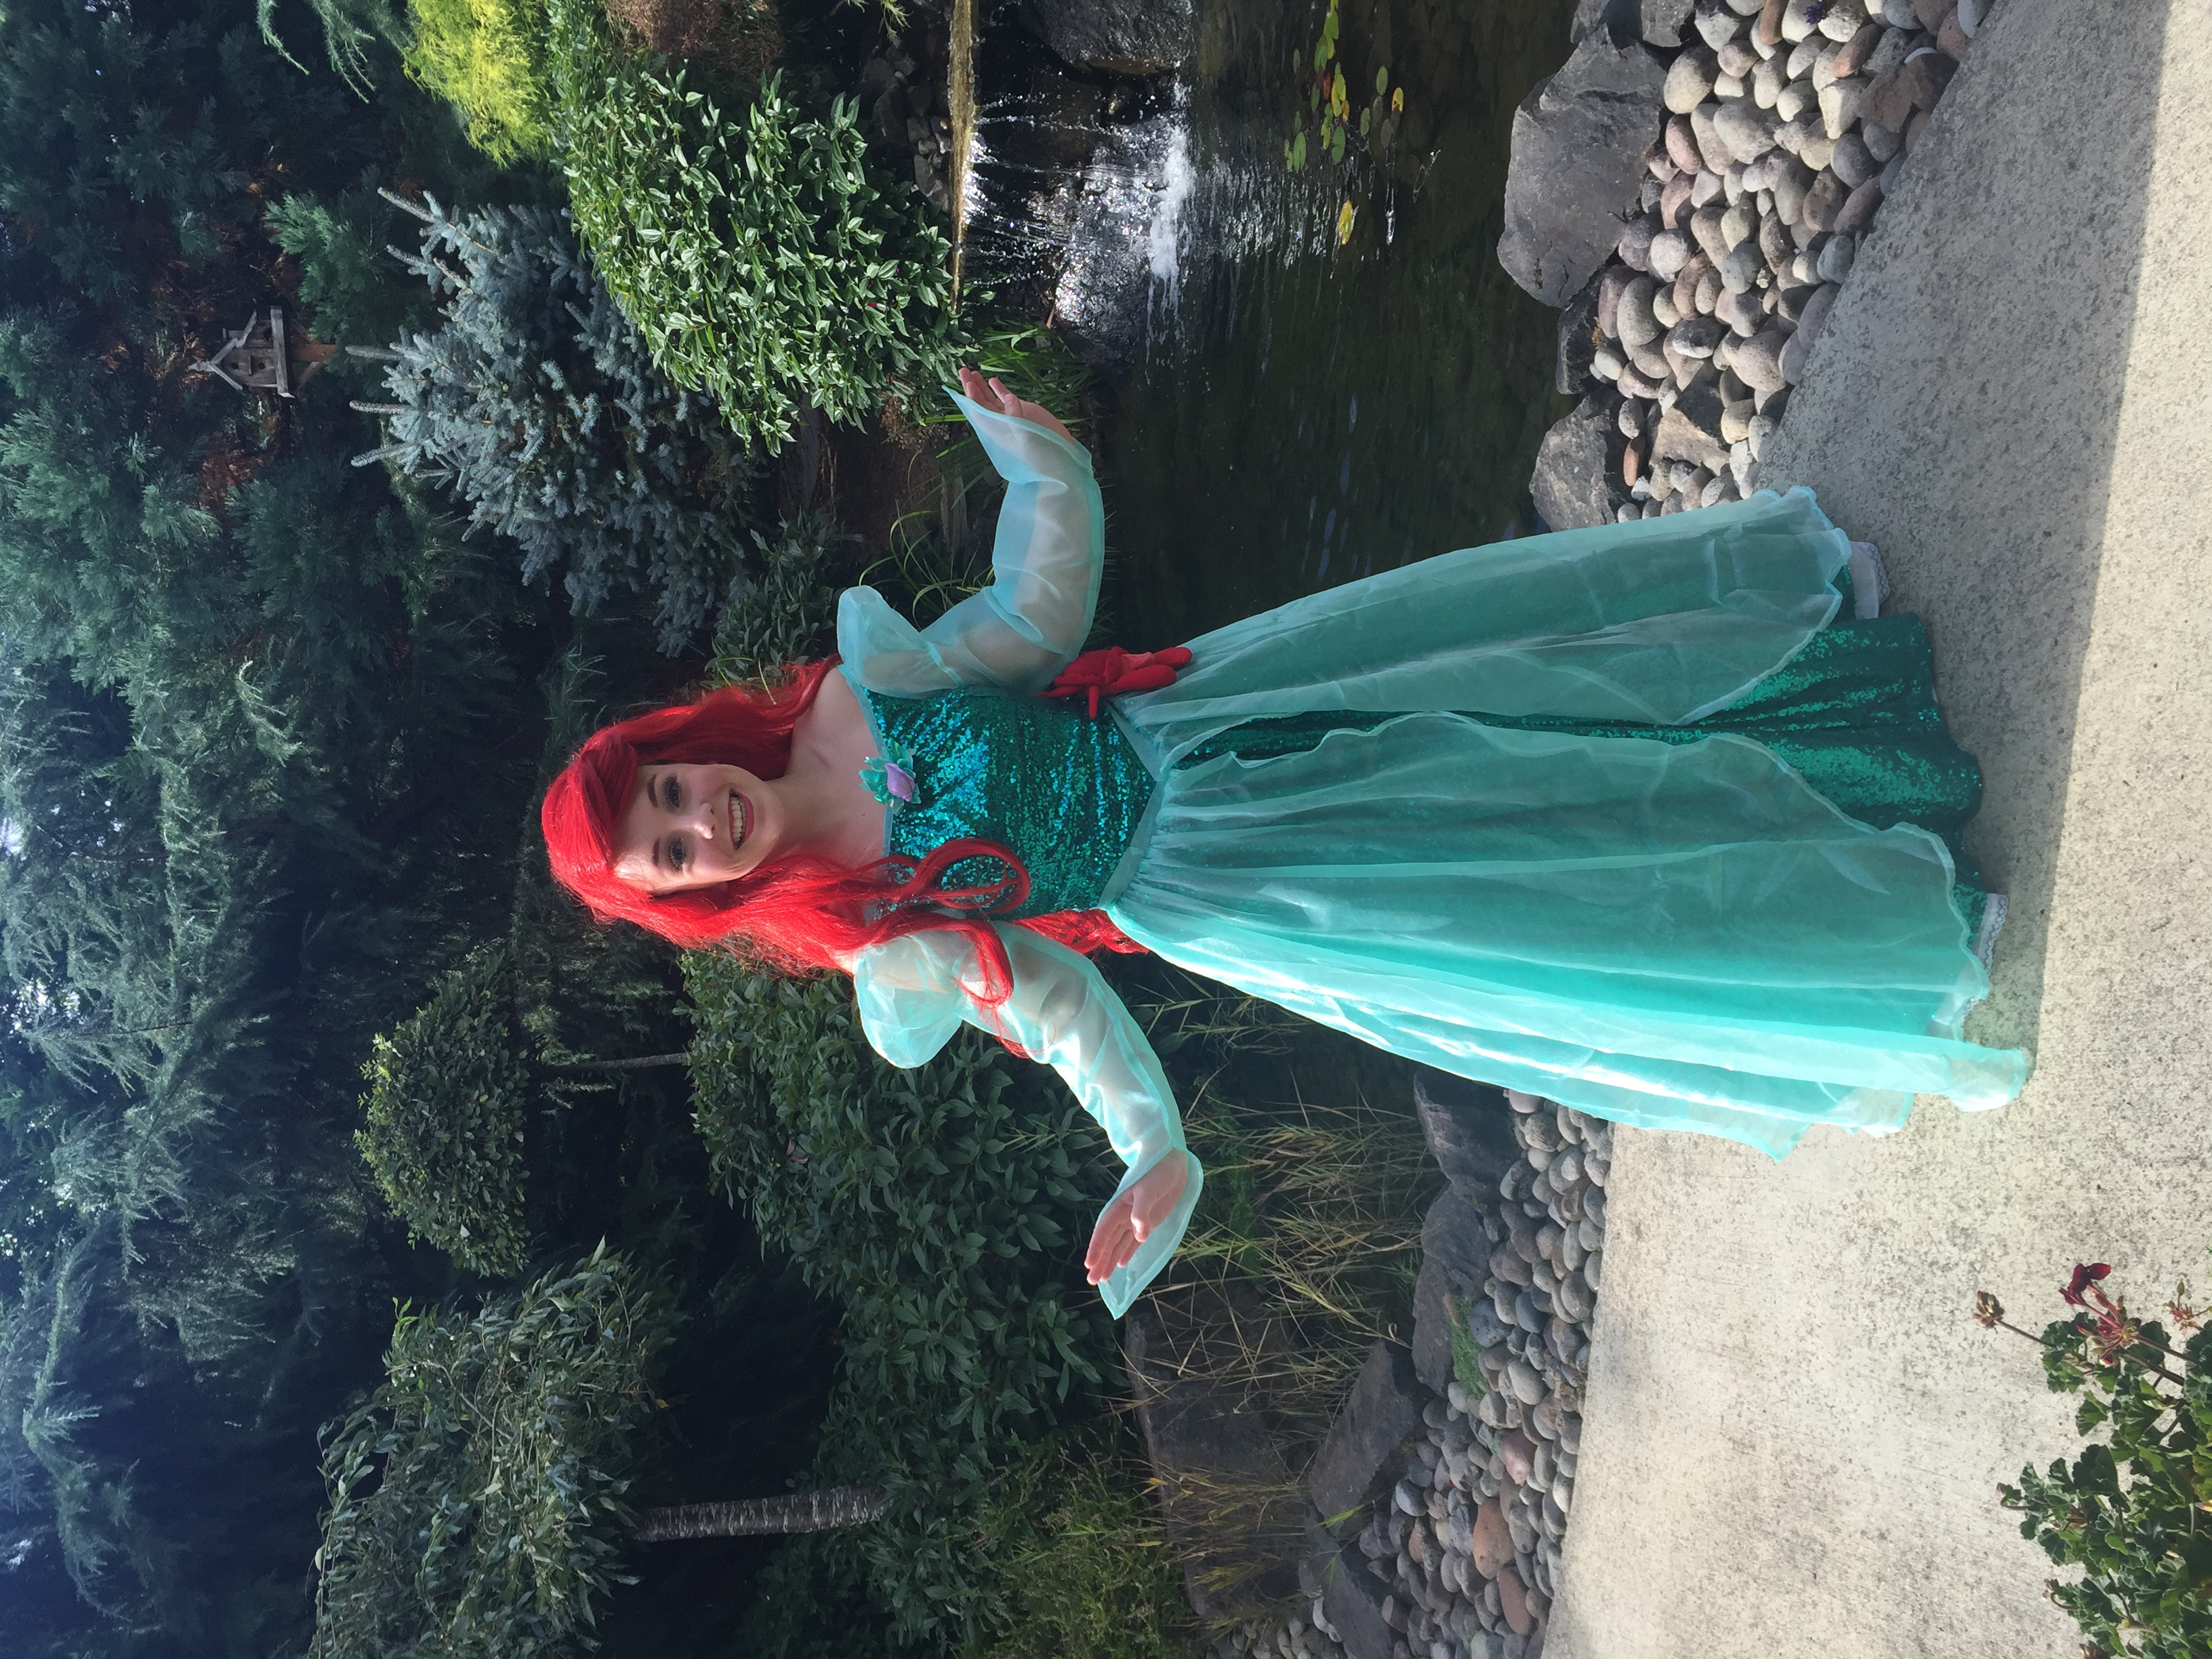 Princess party with Earth Fairy Entertainment in Portland Oregon, Mermaid for Little kids, impersona